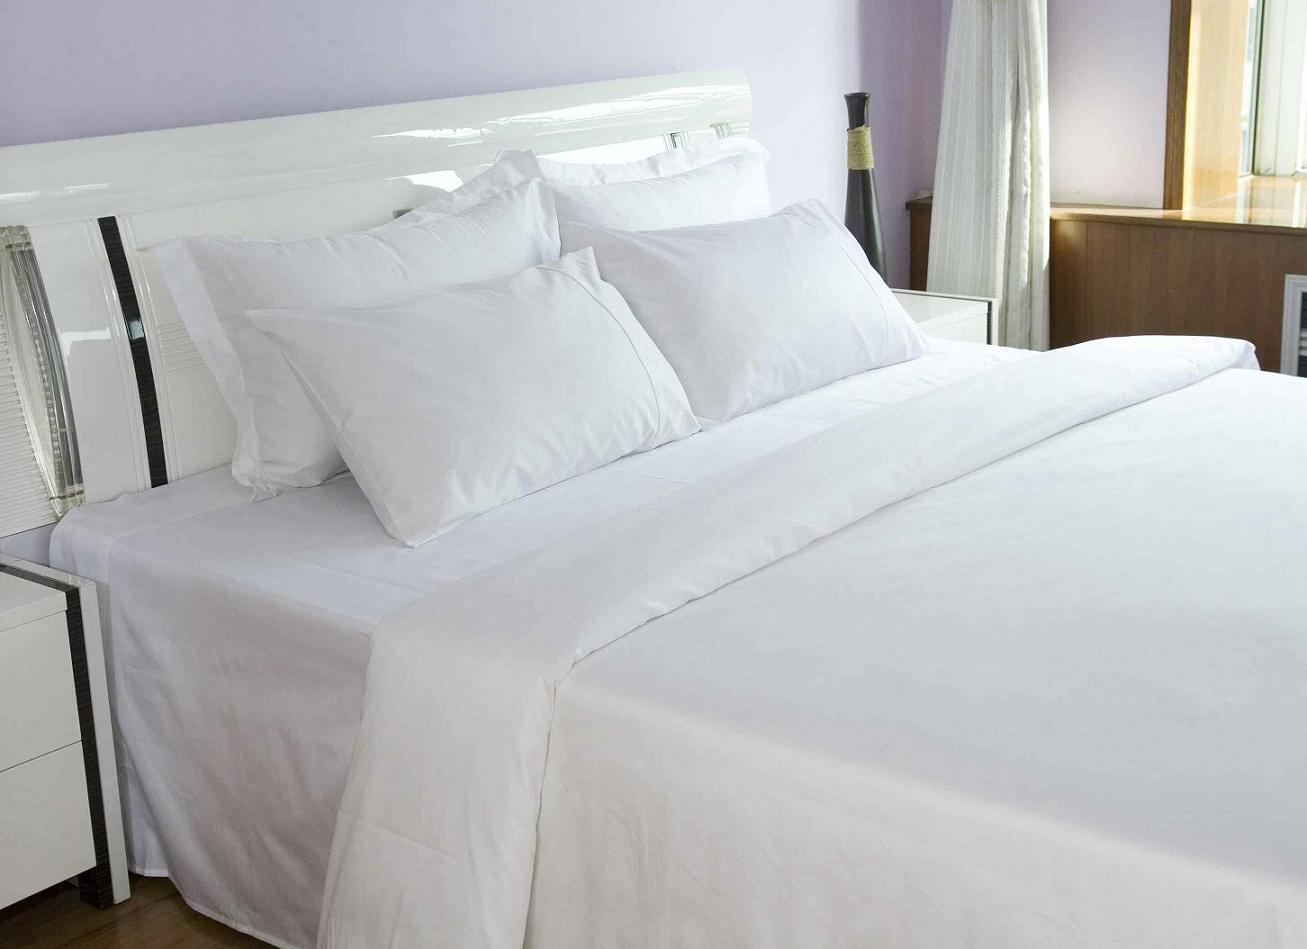 300T Satin Cotton Hotel Bedding Sheet, Hotel Bed Linen, Hotel Bed Sheet